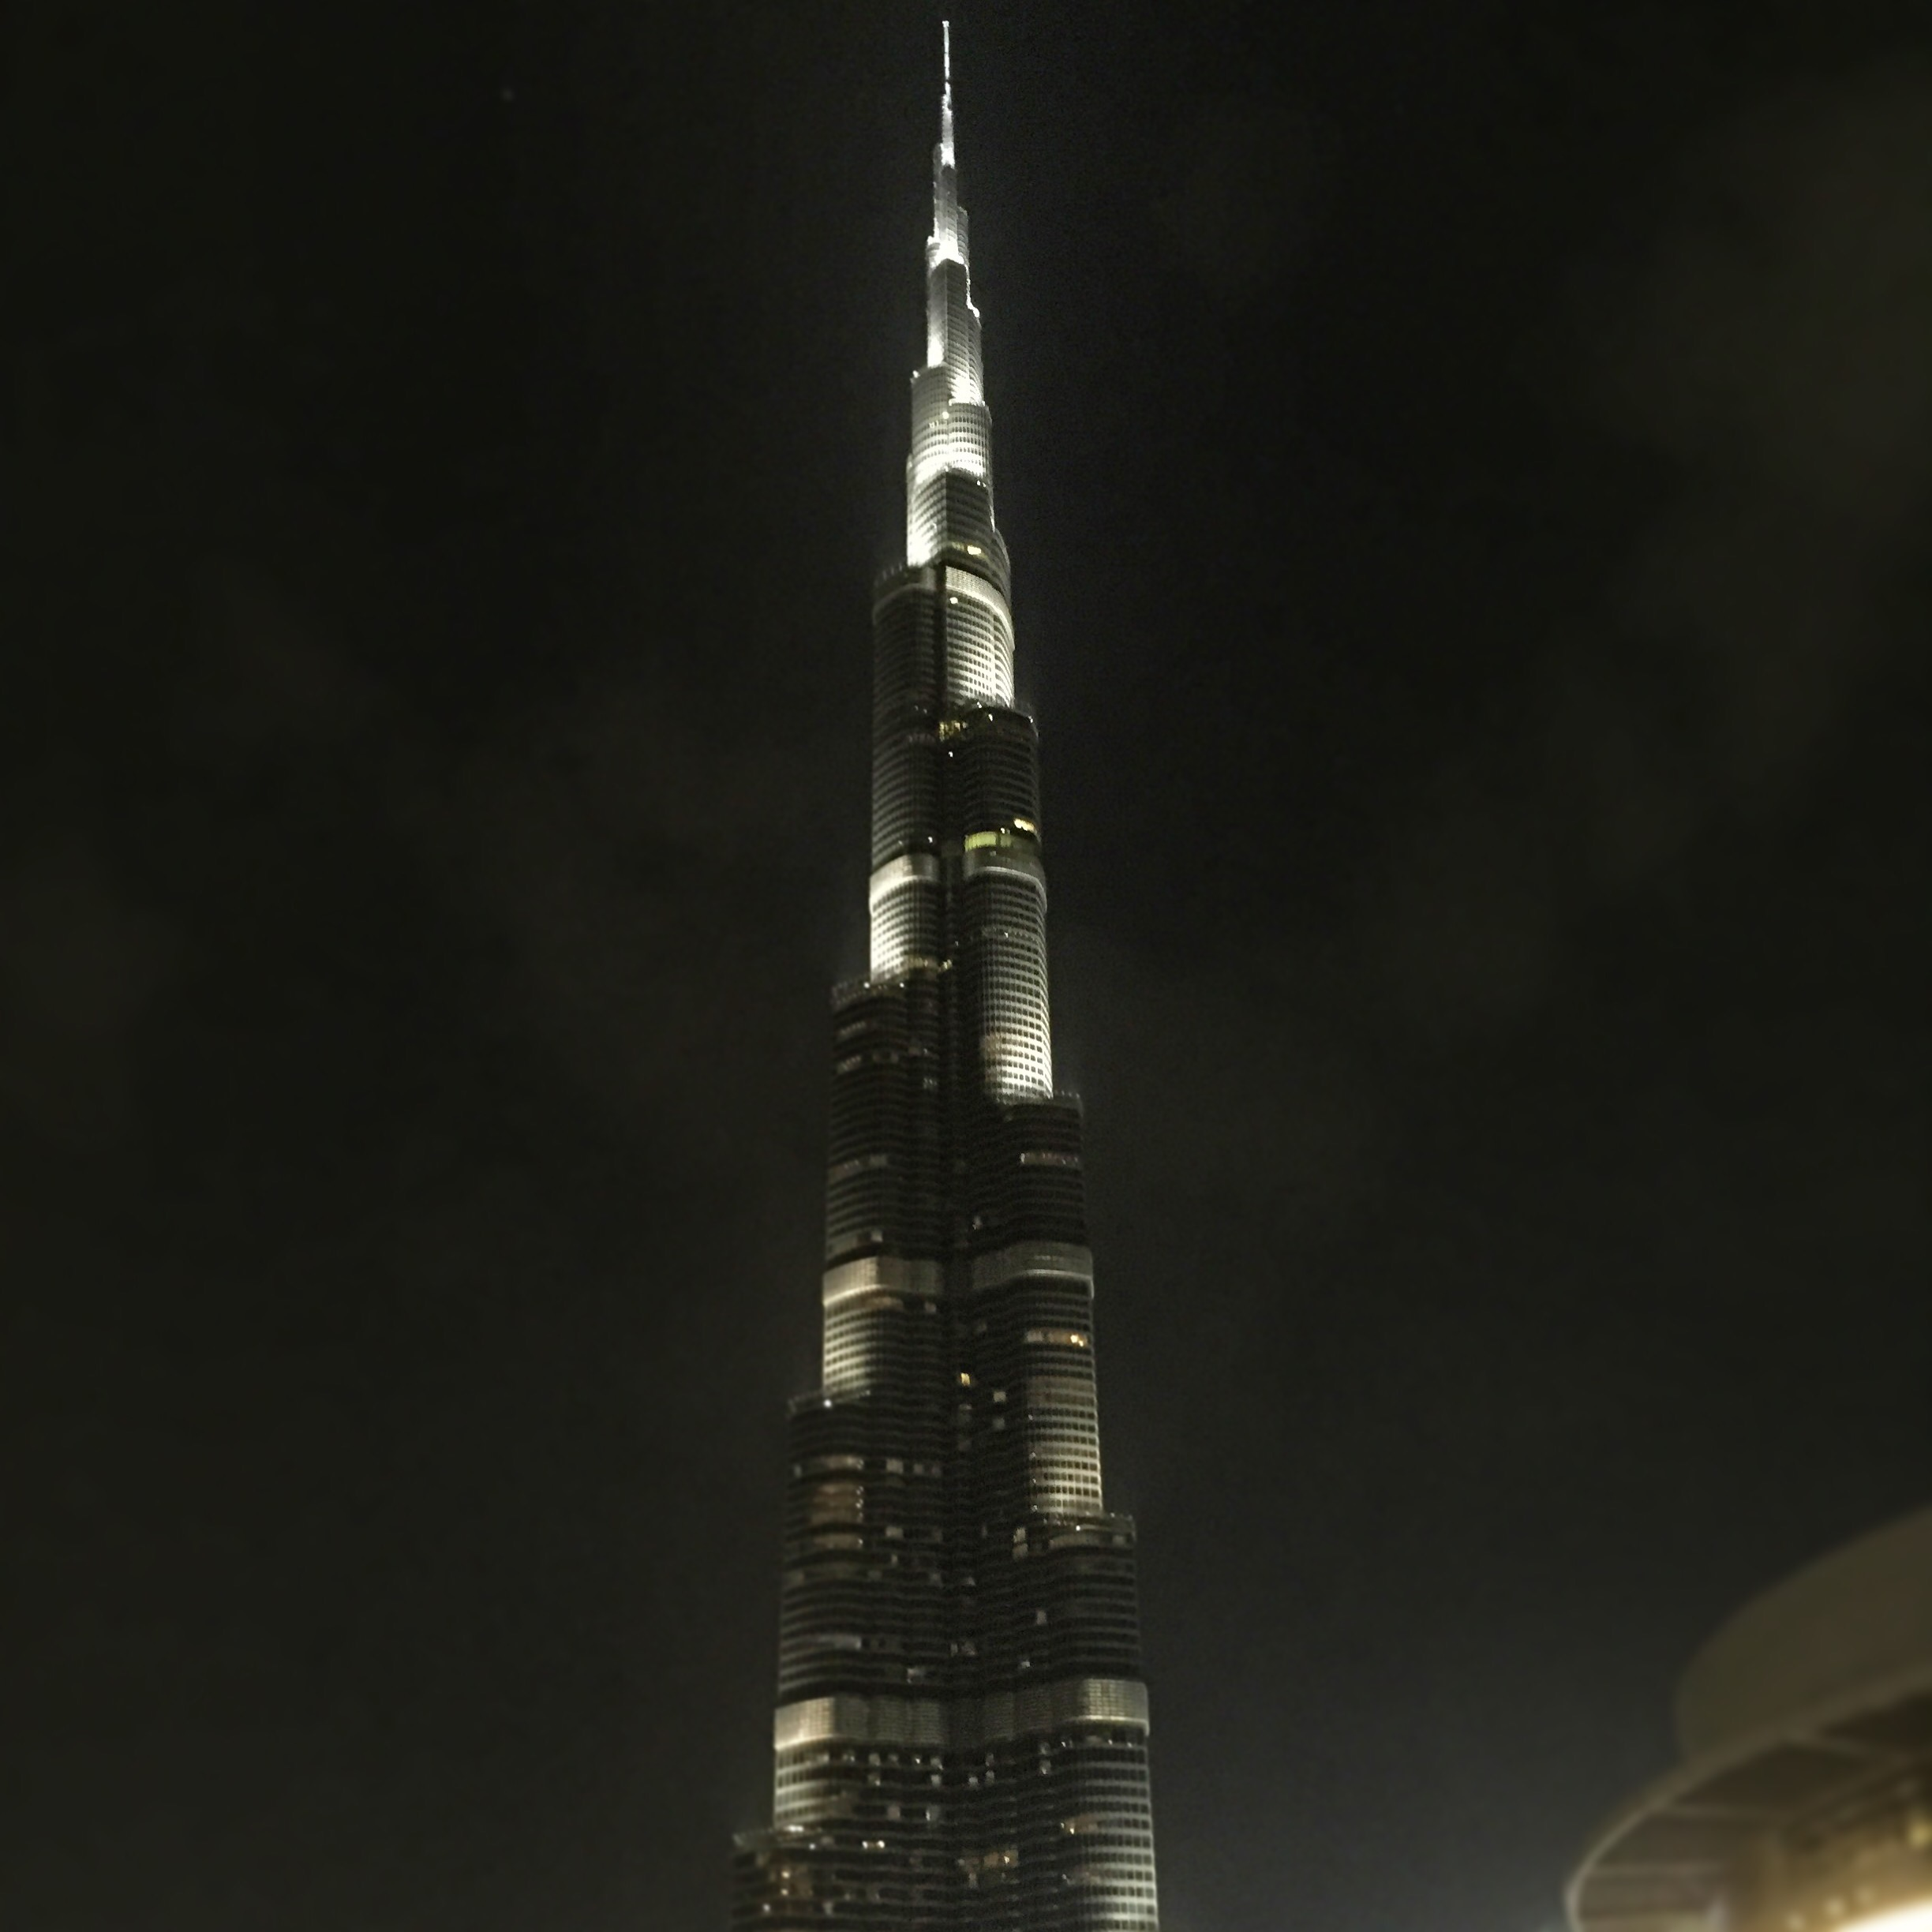 Burj Khalifa at night tallest building in the world